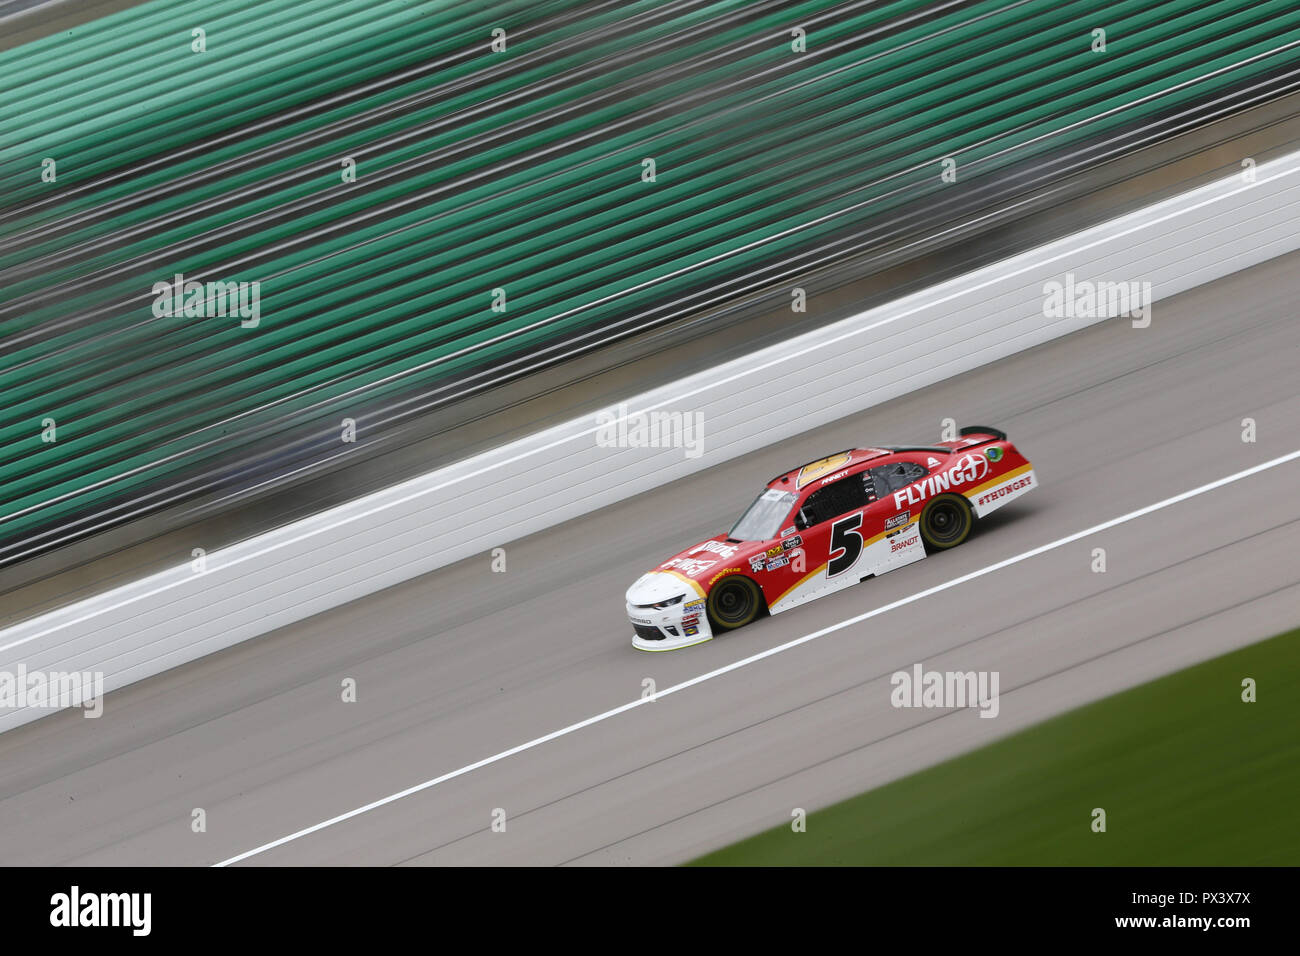 Kansas City, Kansas, USA. 19th Oct, 2018. Michael Annett (5) takes to the track to practice for the Kansas Lottery 300 at Kansas Speedway in Kansas City, Kansas. Credit: Justin R. Noe Asp Inc/ASP/ZUMA Wire/Alamy Live News - Stock Image